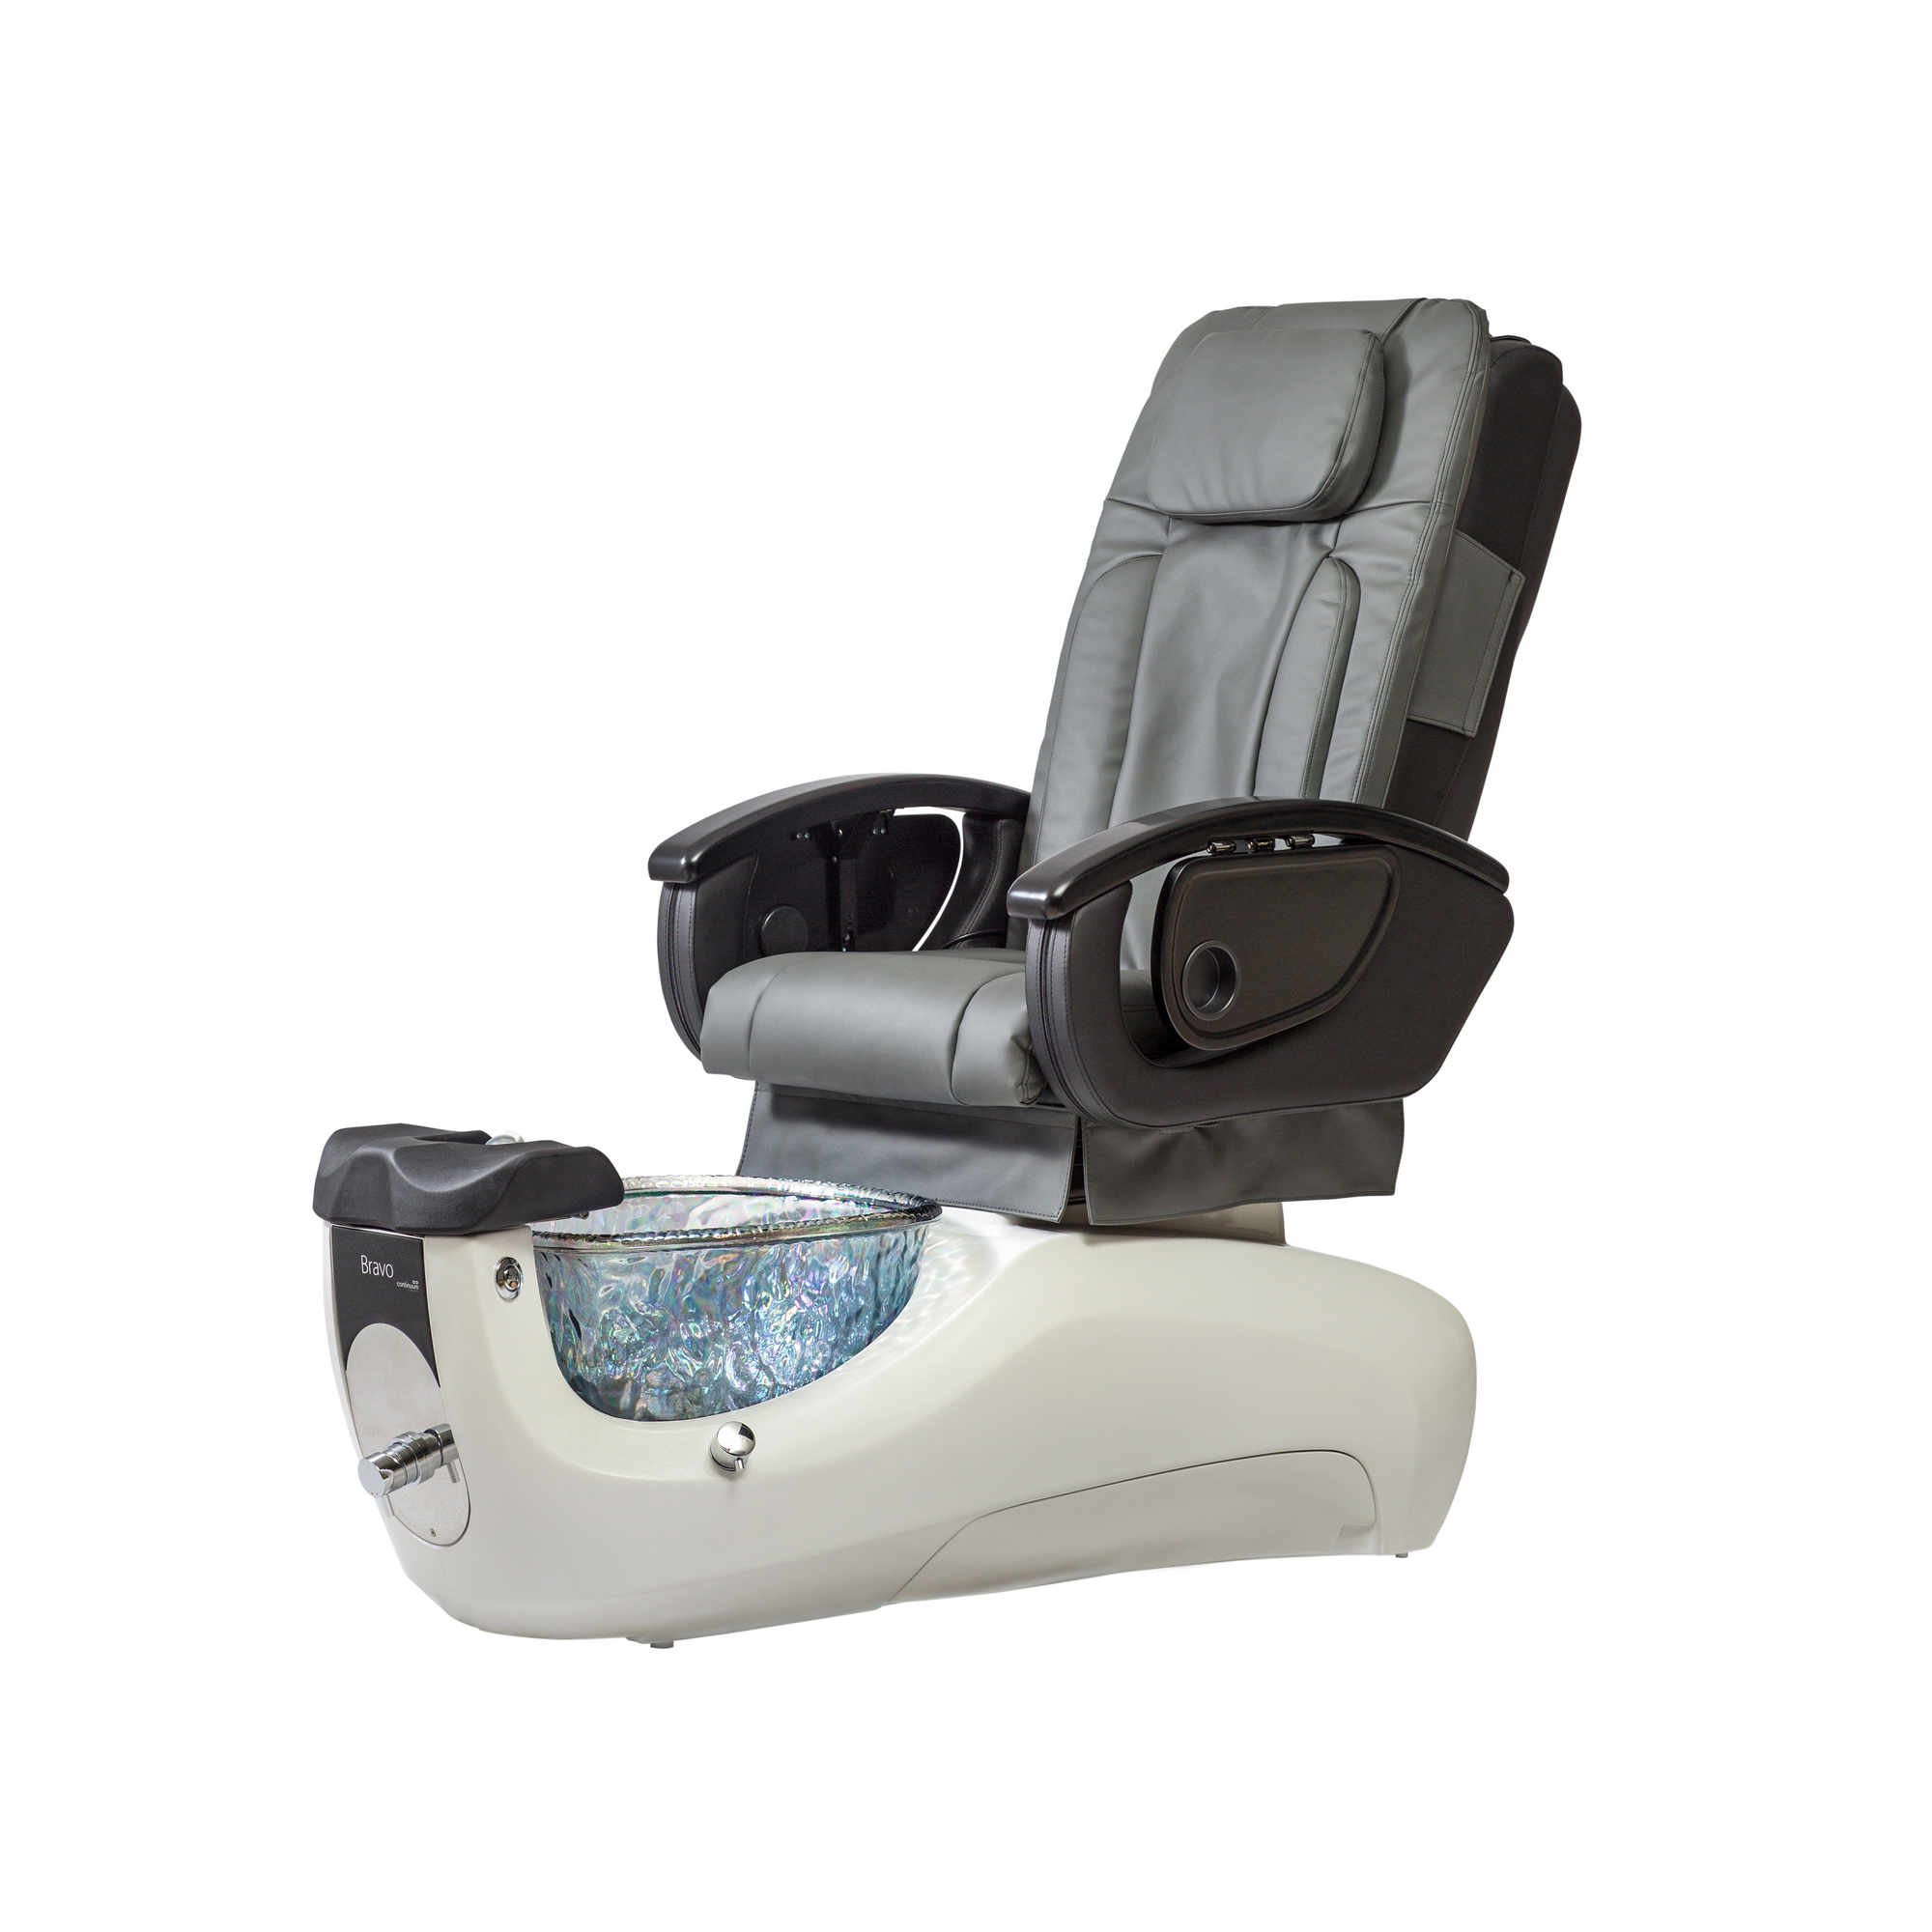 Bravo VE Pedicure Spa Chair